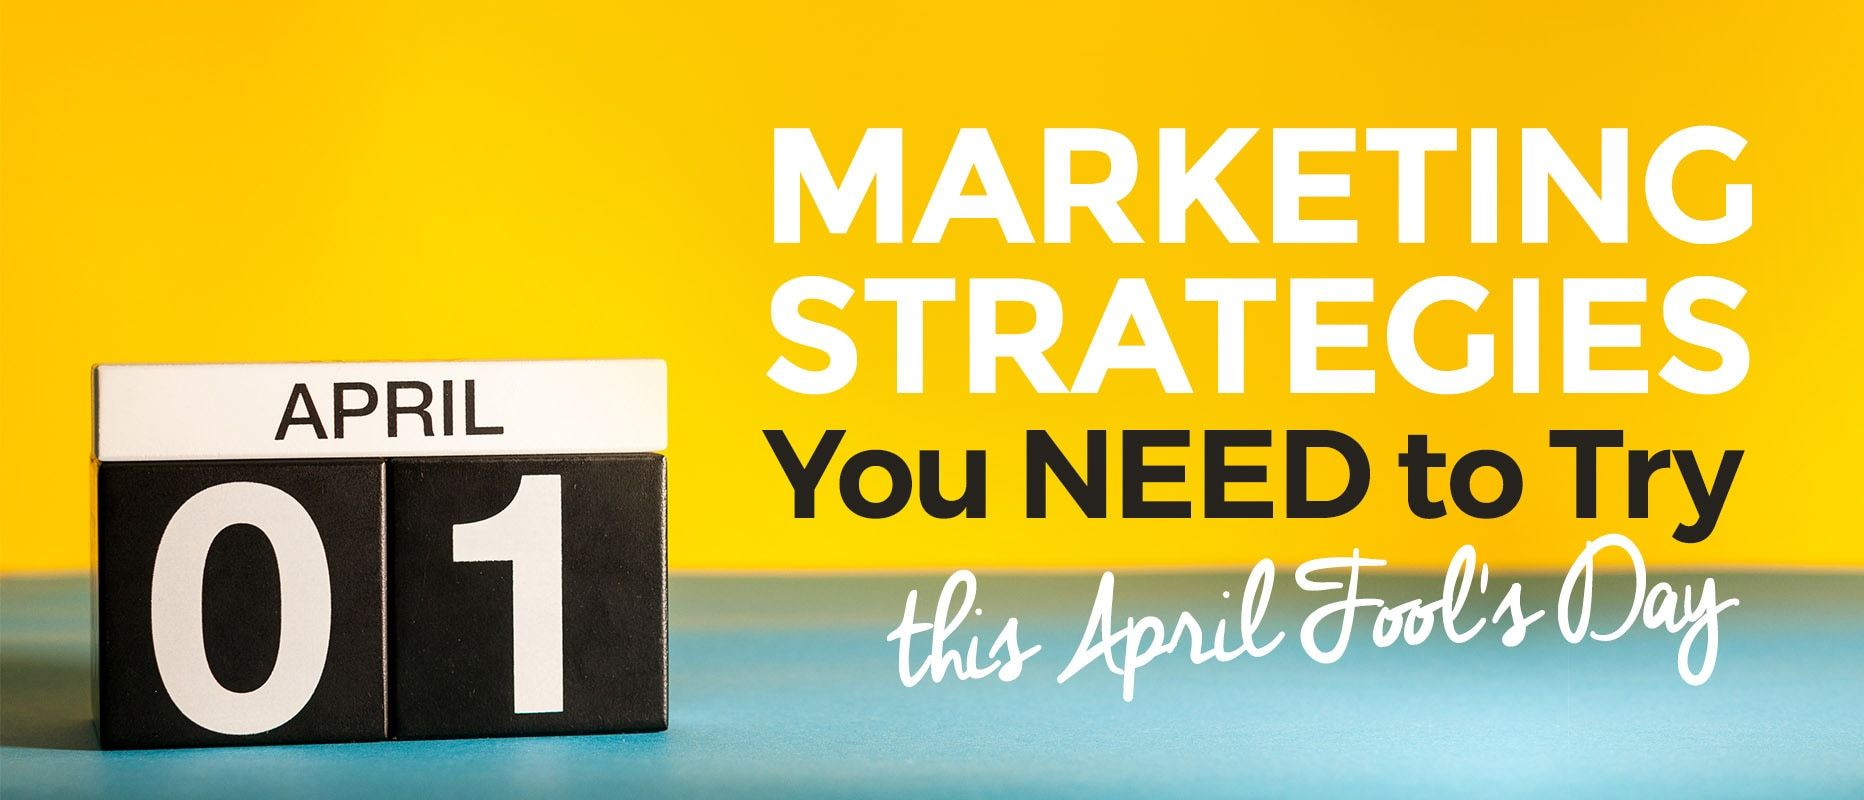 Marketing Strategies You NEED to Try This April Fool's Day